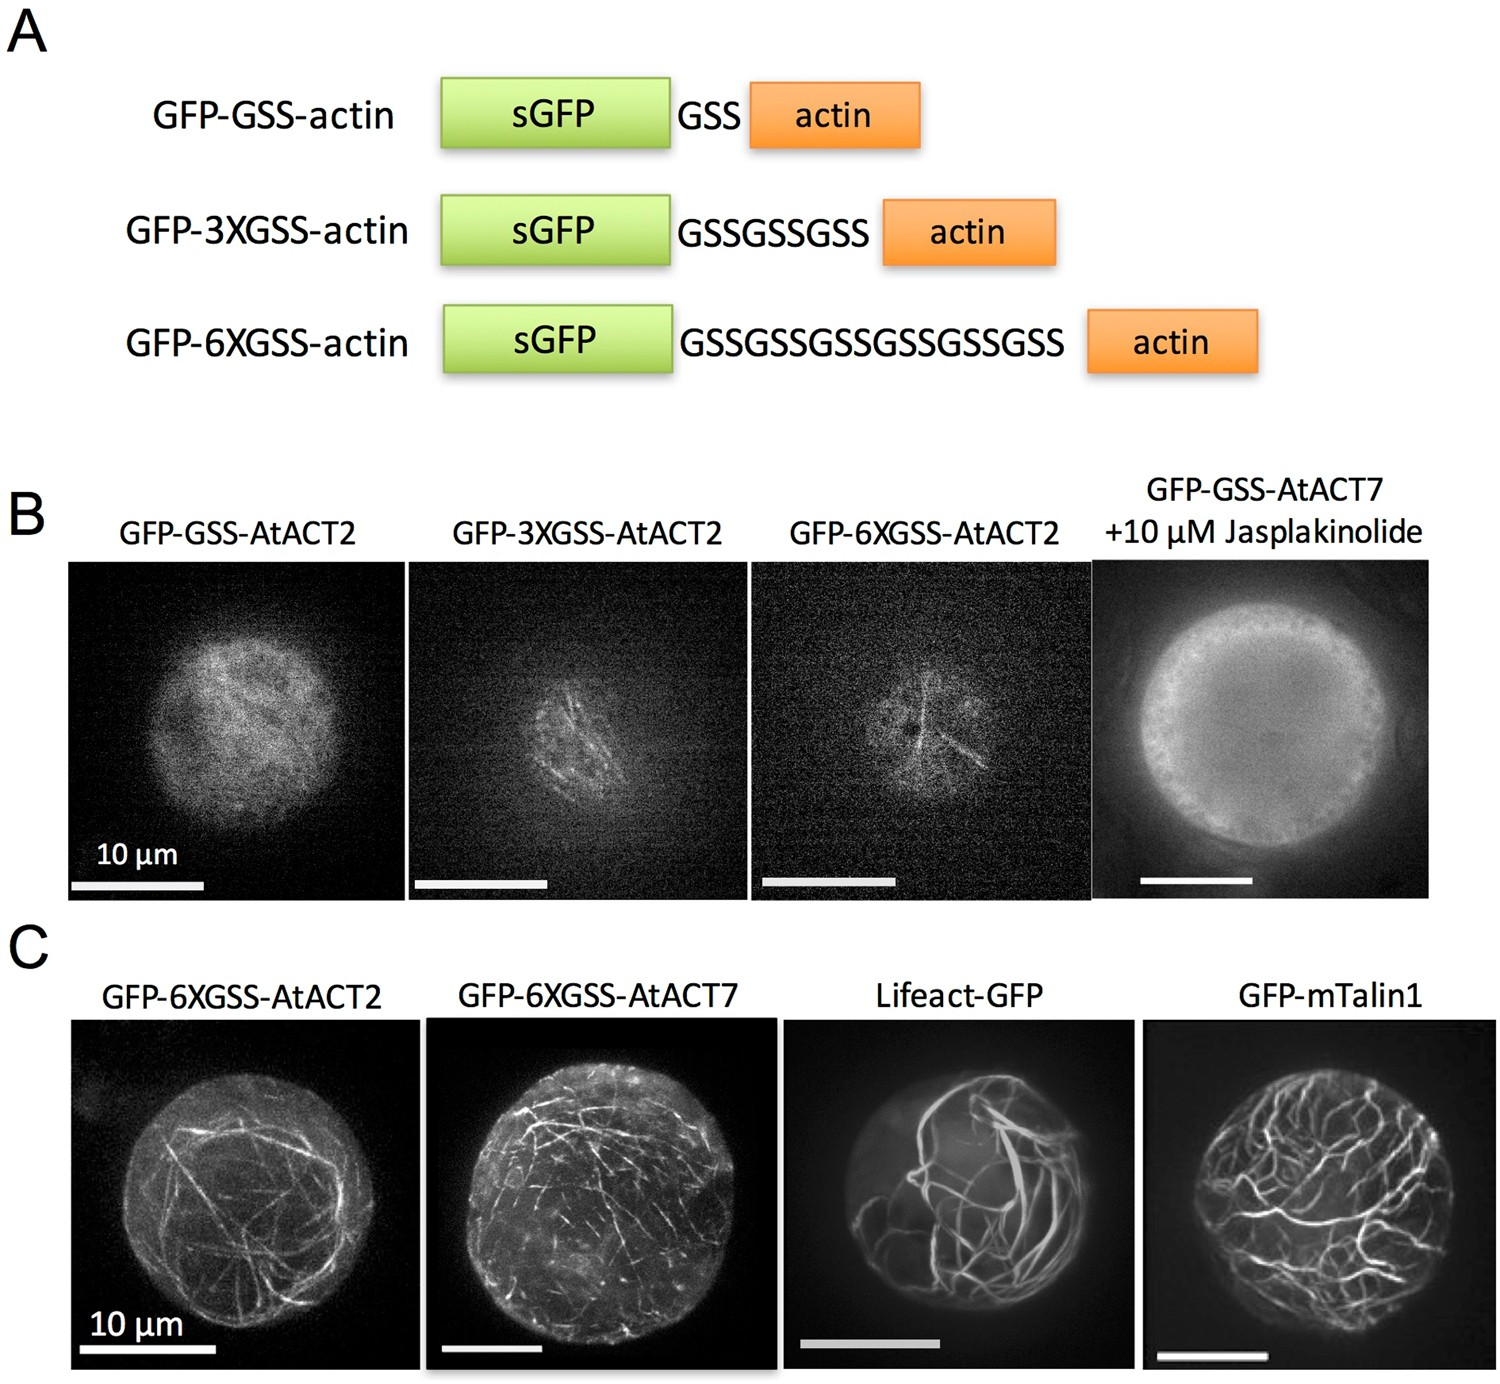 Arabidopsis vegetative actin isoforms, AtACT2 and AtACT7, generate